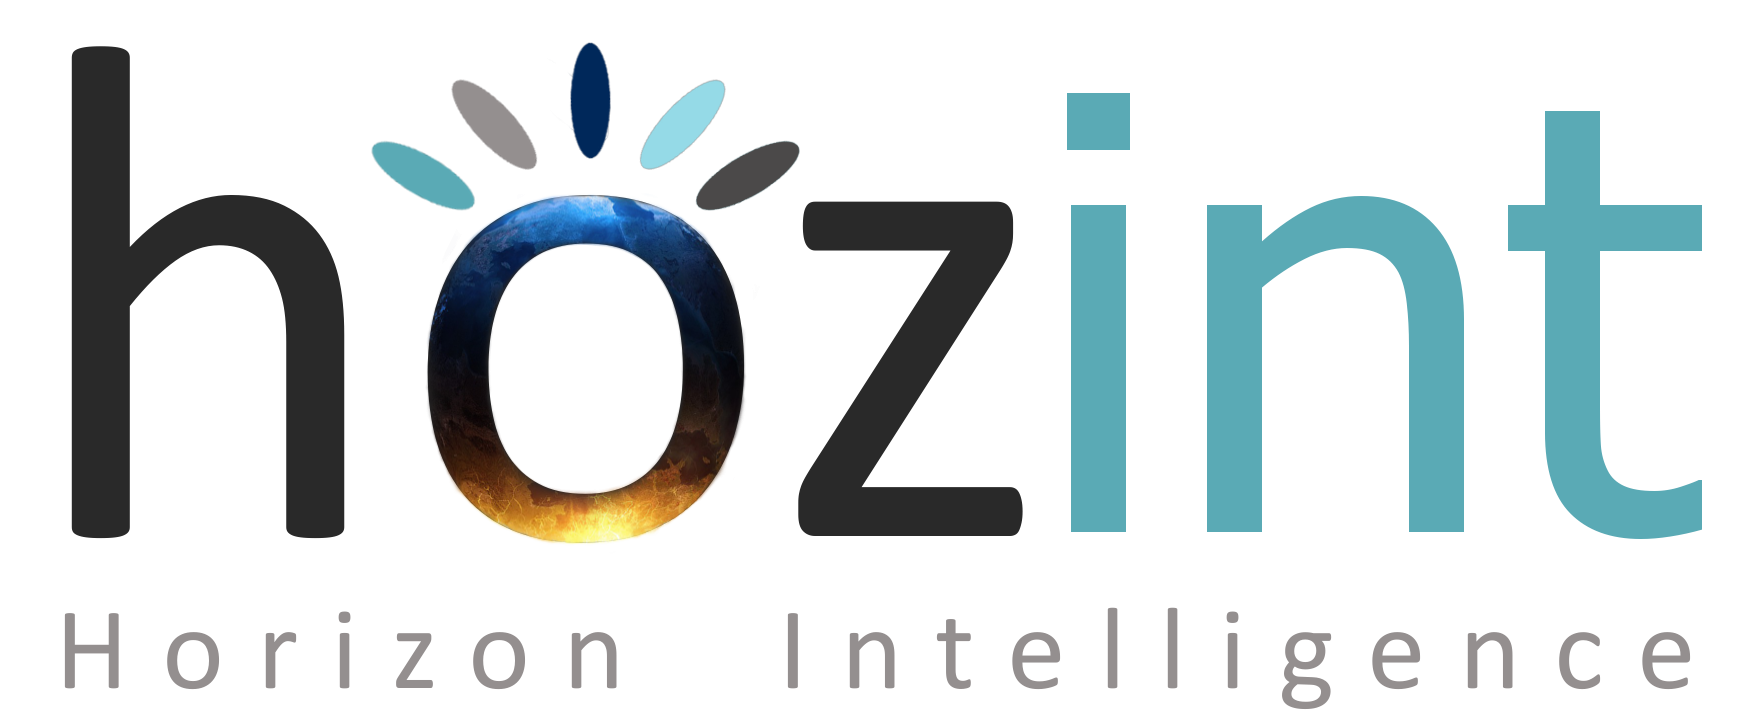 HOZINT | Horizon Intelligence